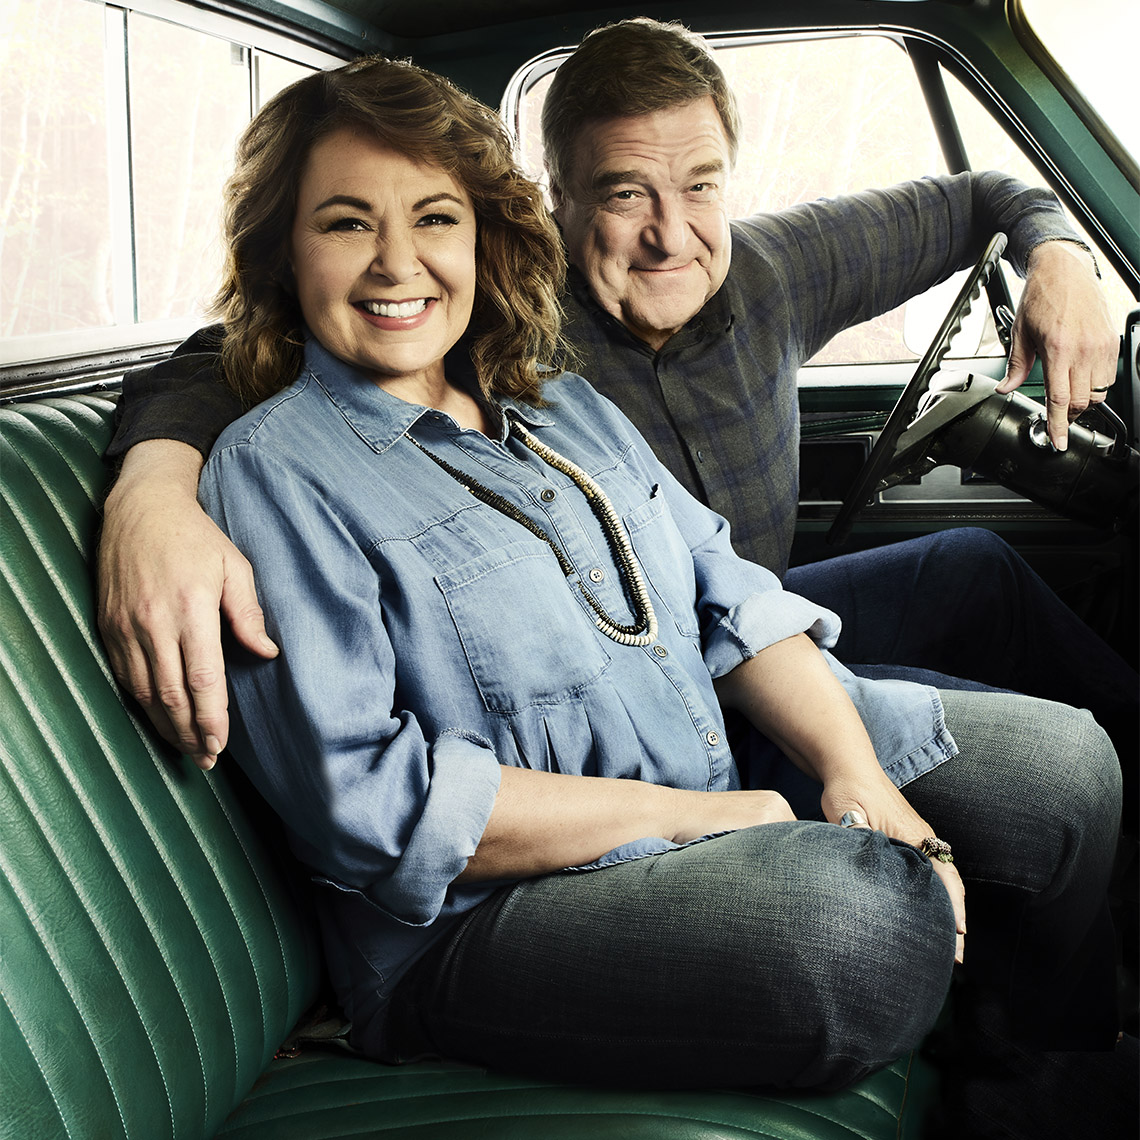 Roseanne Barr and John Goodman in the front seat of a old green pickup truck